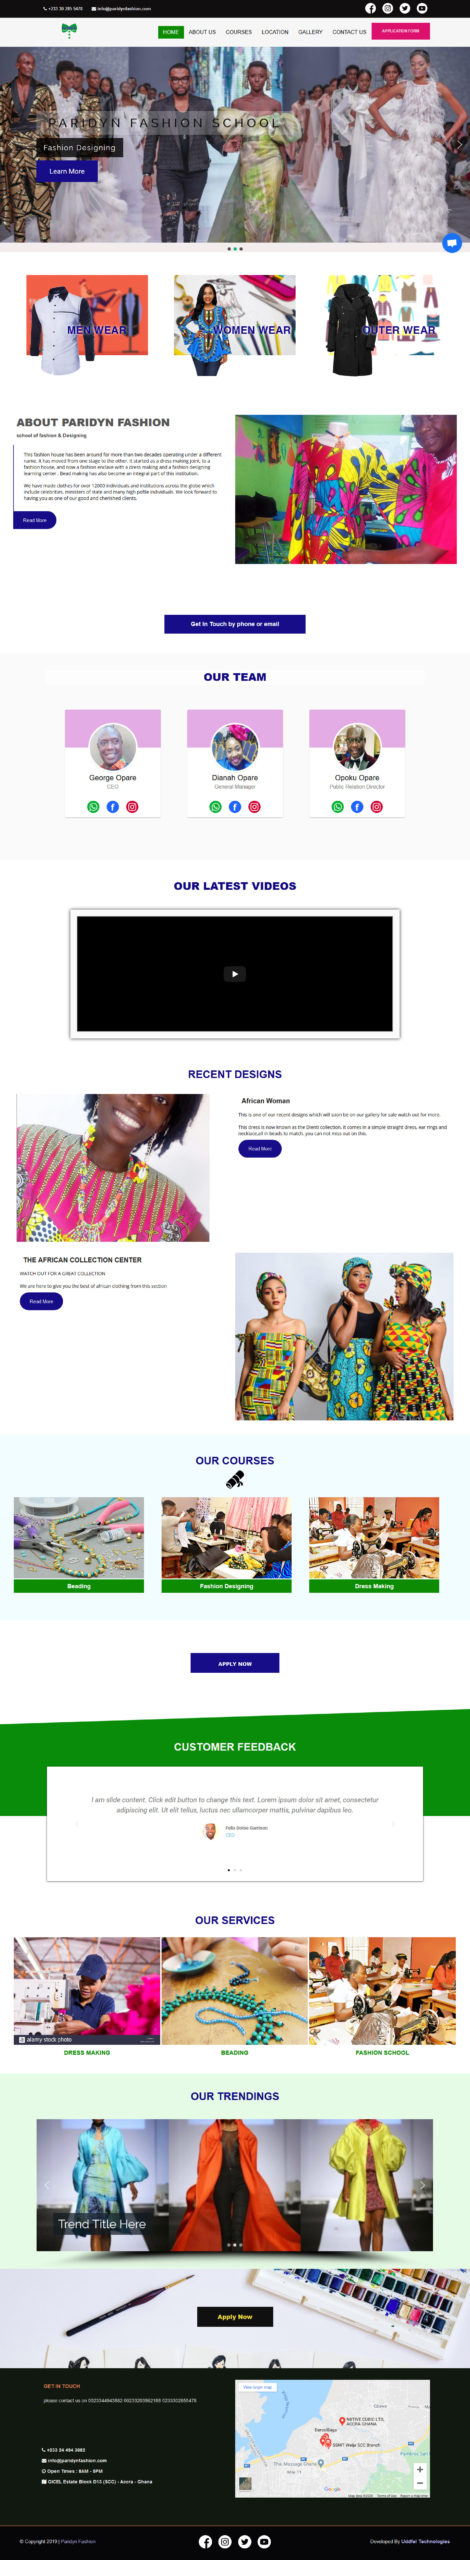 Best Fashion School Website Design | Uddfel Technologies Limited